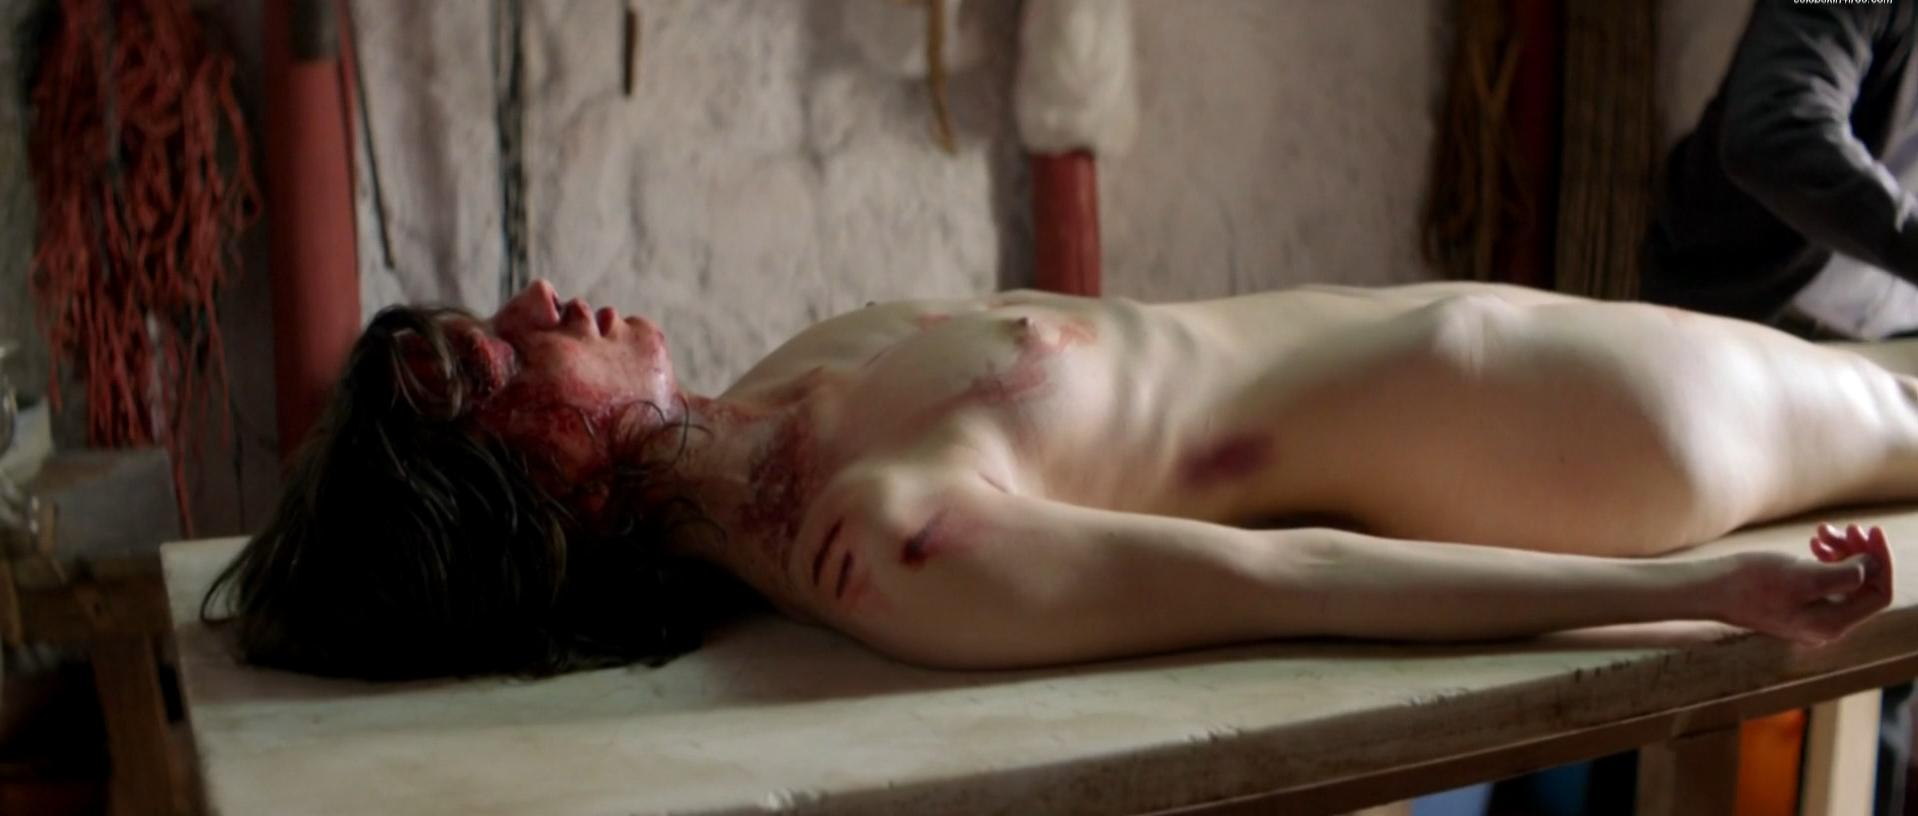 Delphine Tempels nude - Canibal (2013)